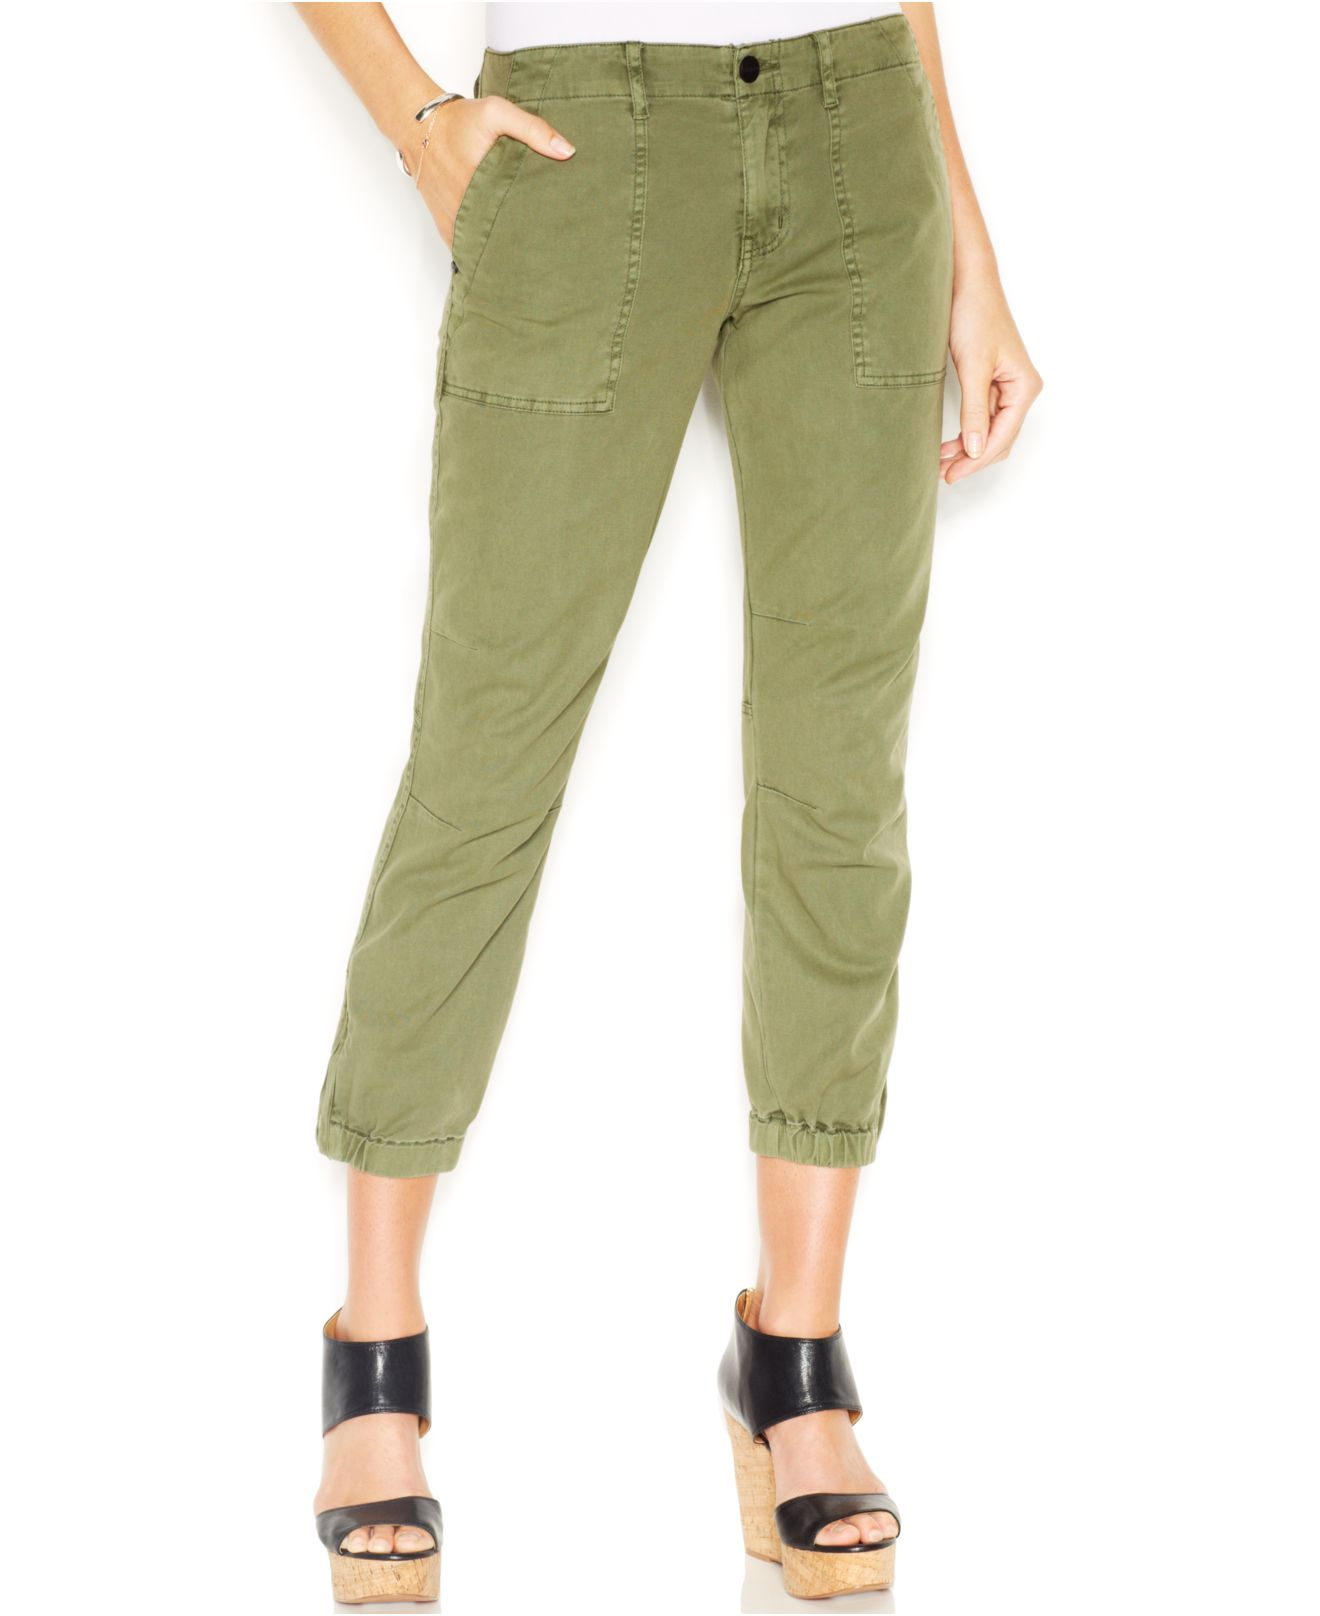 Innovative Women Camoflauge Army Jogger Pant Capri Army Pants 2sizes SM LXL Green